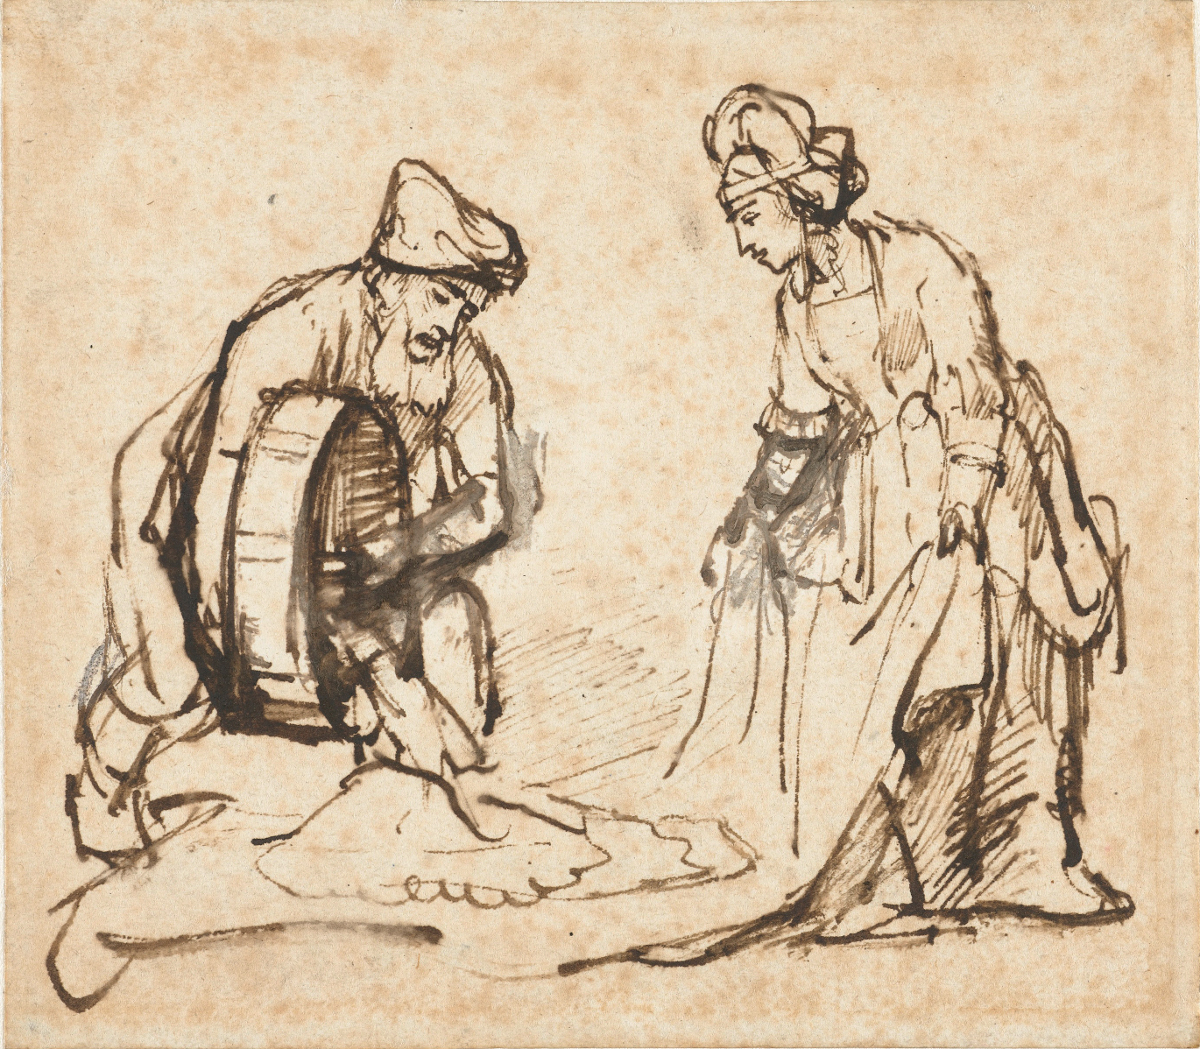 Rembrandt Harmensz. van Rijn: Boaz pouring Six Measures of Barley into Ruth's veil